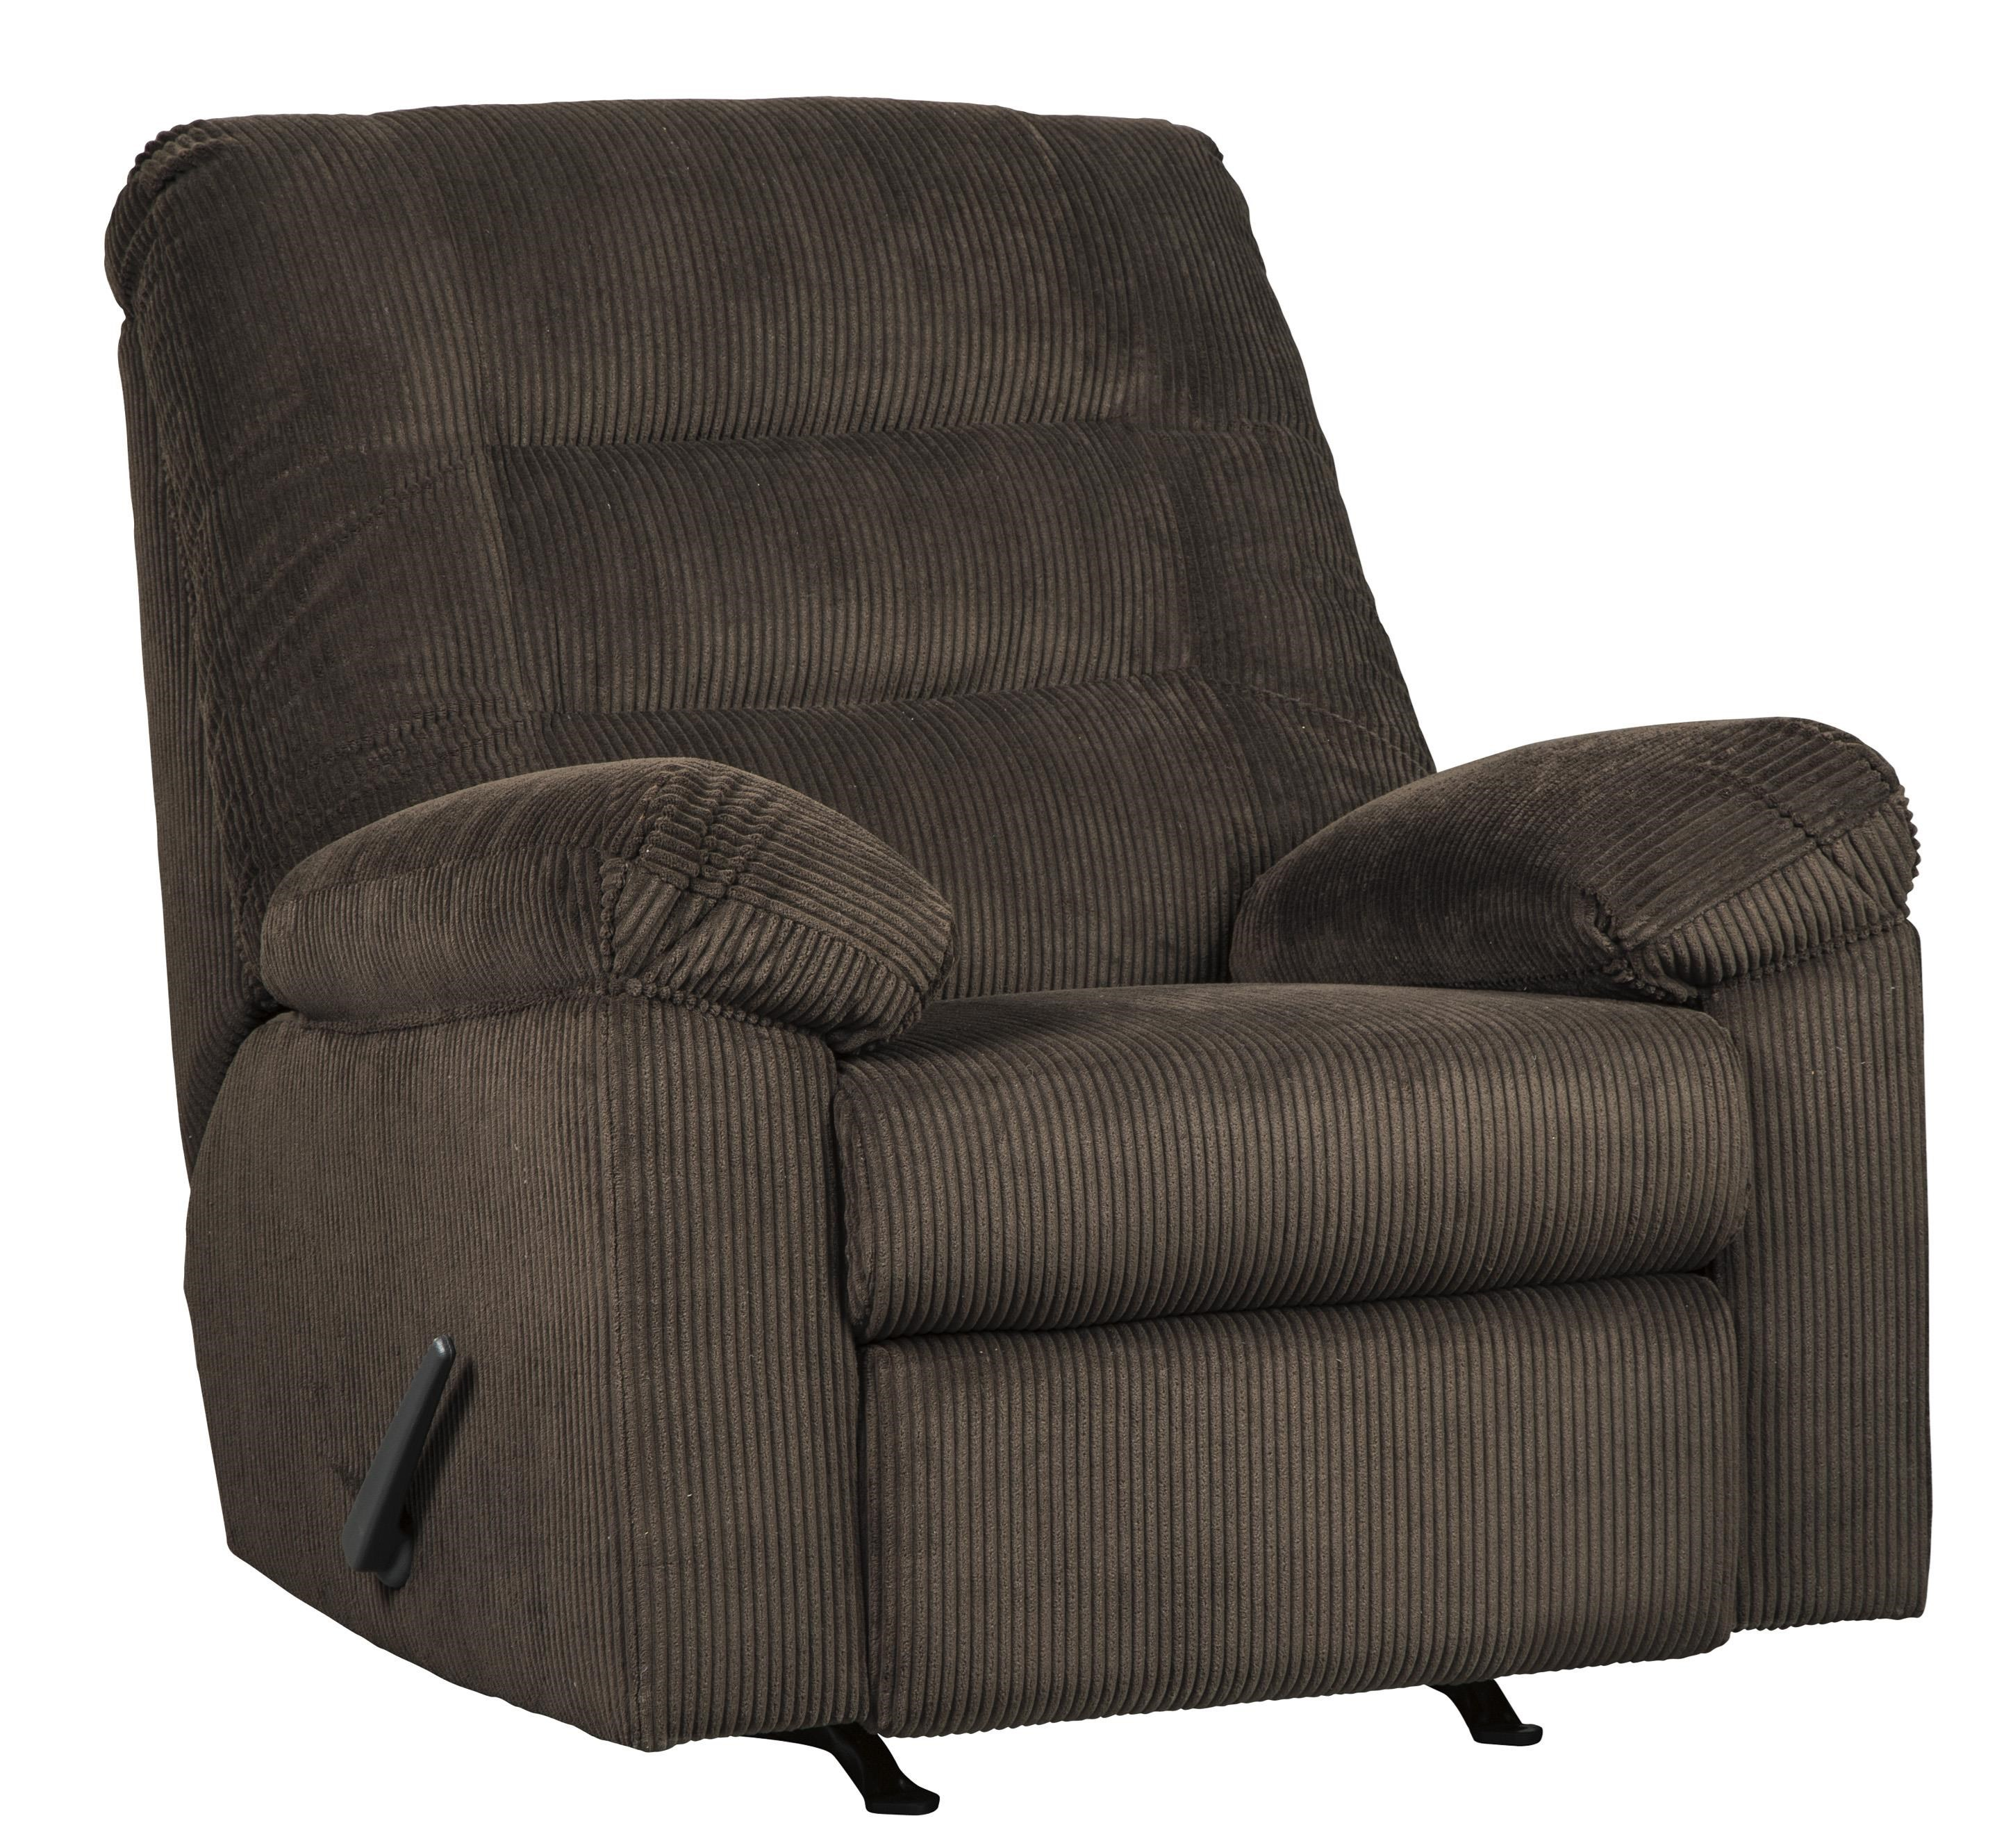 Gosnell Contemporary Rocker Recliner by Signature Design by Ashley at Westrich Furniture & Appliances